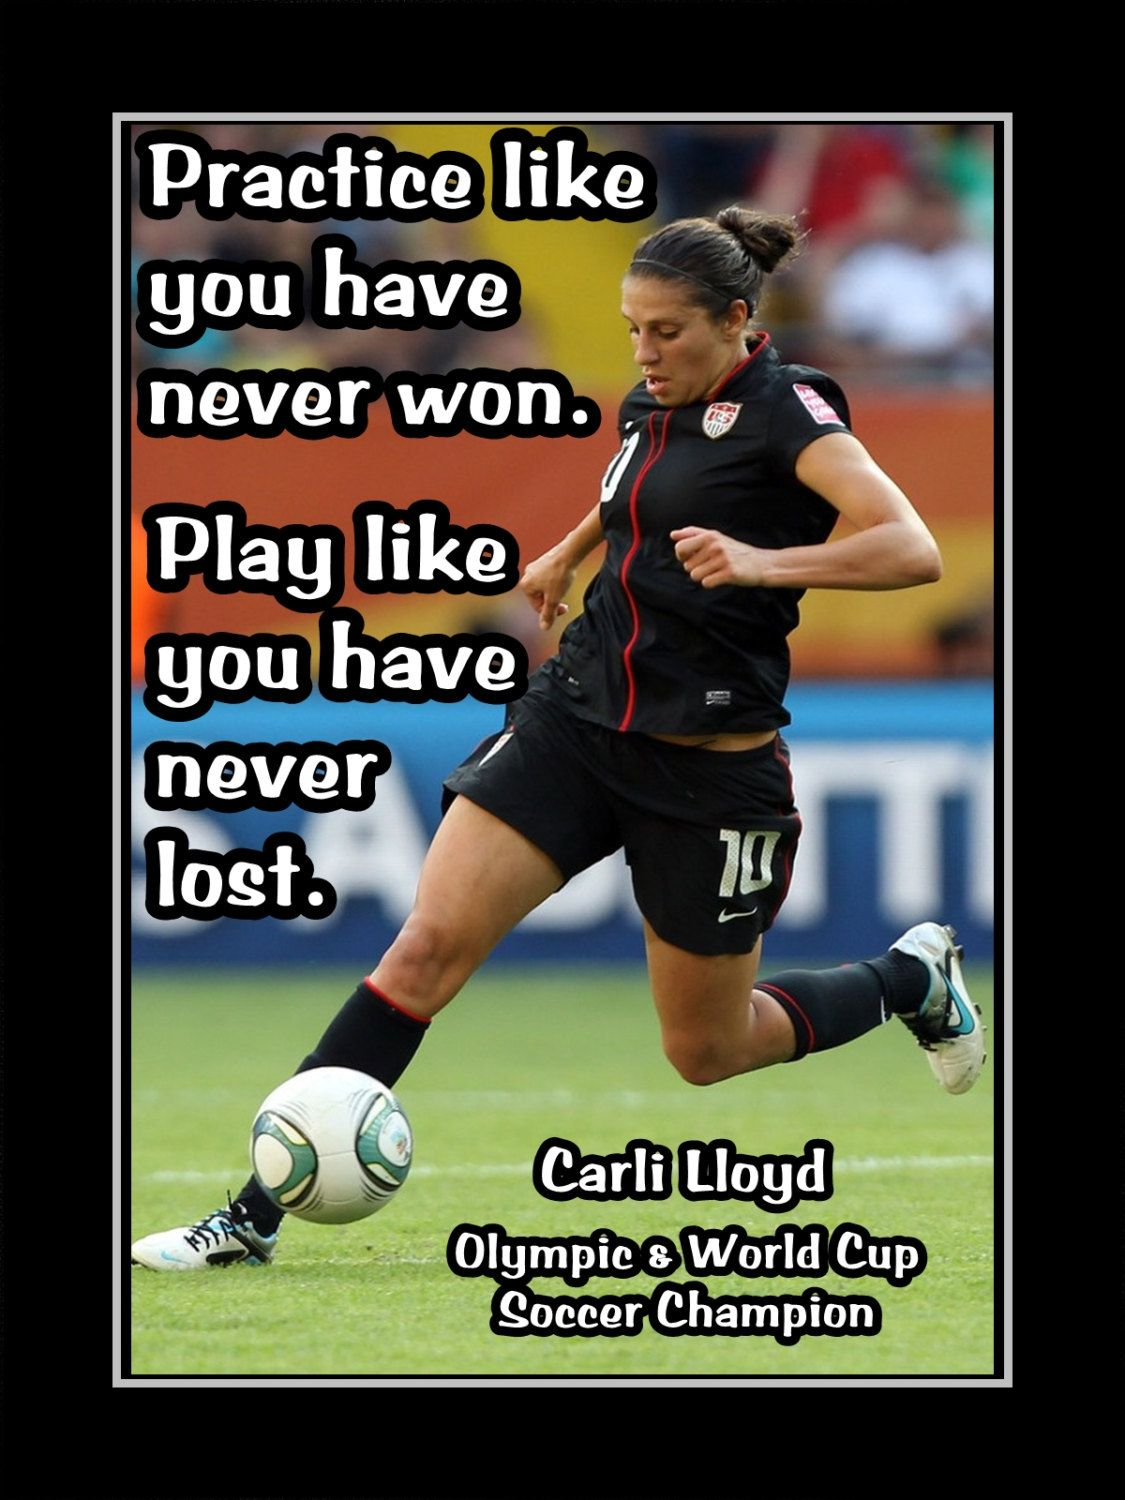 7fc7f5e4b6c Soccer Motivation Carli Lloyd USWNT Photo Quote Poster Wall Art Print  5x7